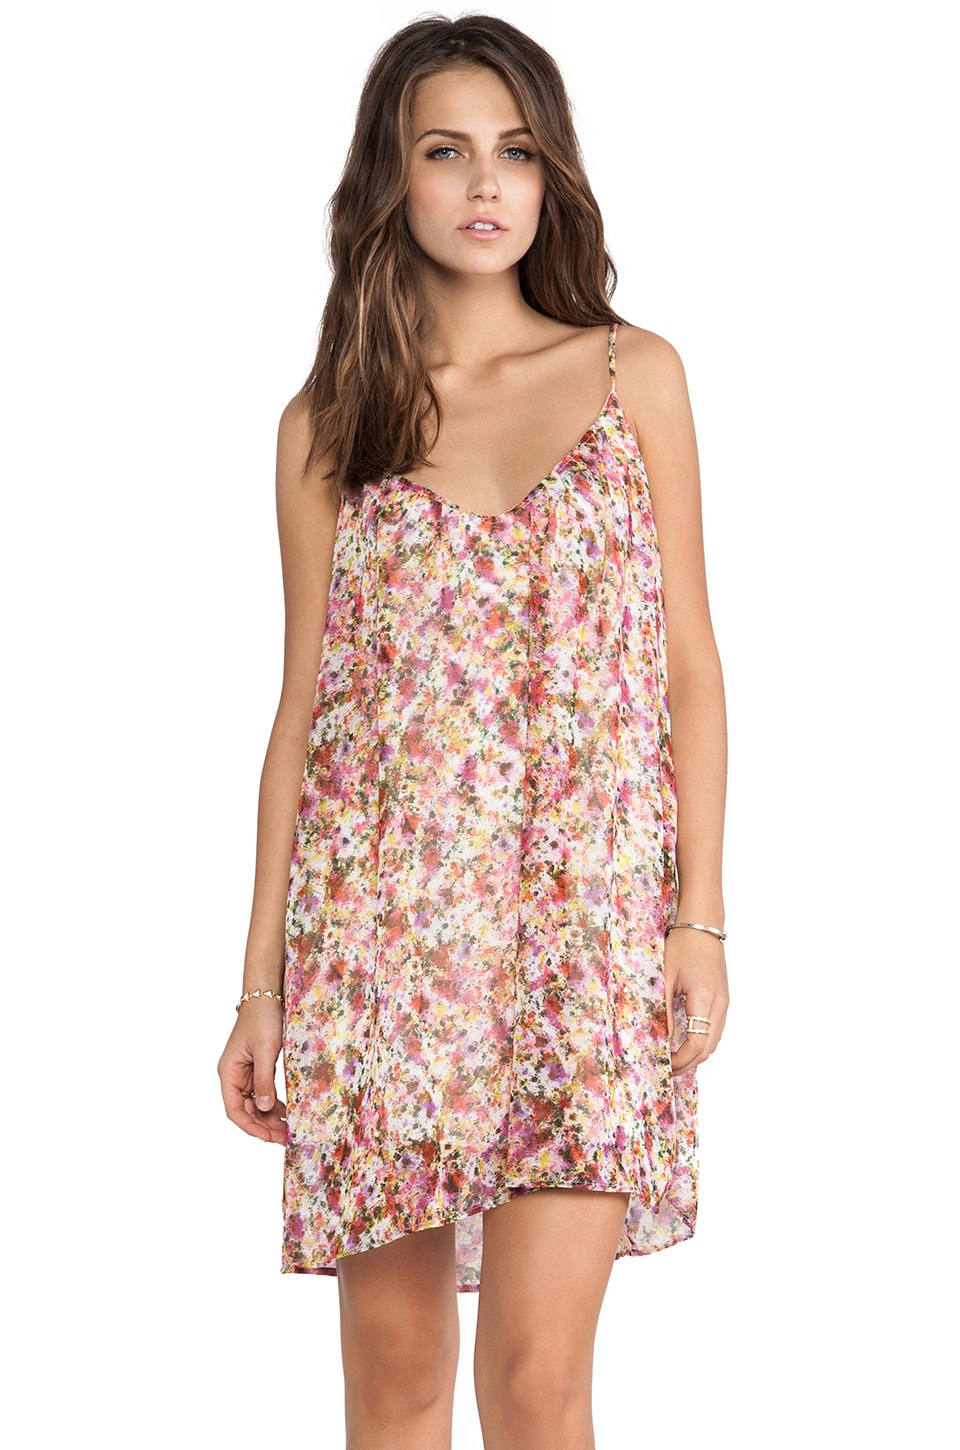 Eight Sixty Dress in Pink Multi